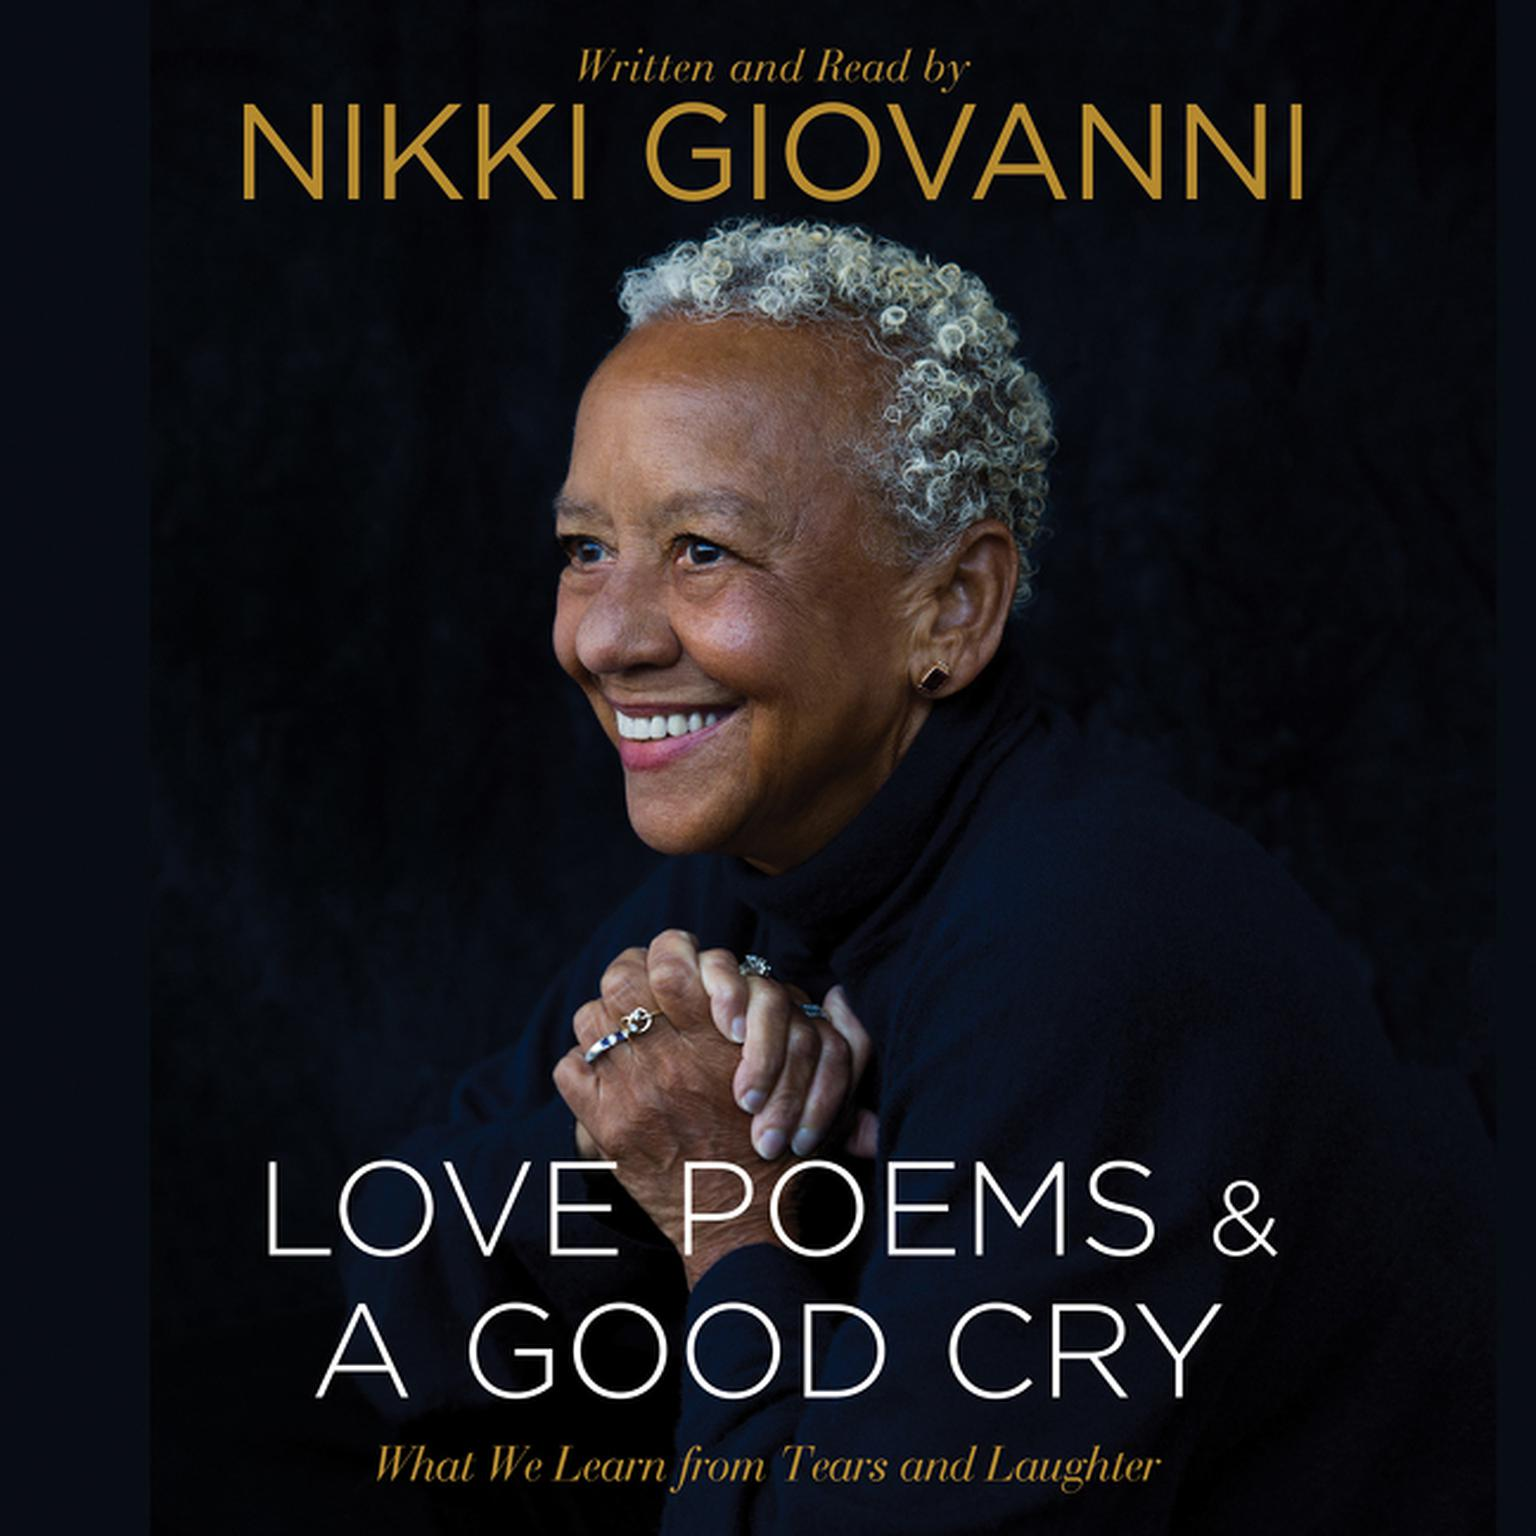 Printable Nikki Giovanni: Love Poems & A Good Cry: What We Learn From Tears and Laughter Audiobook Cover Art